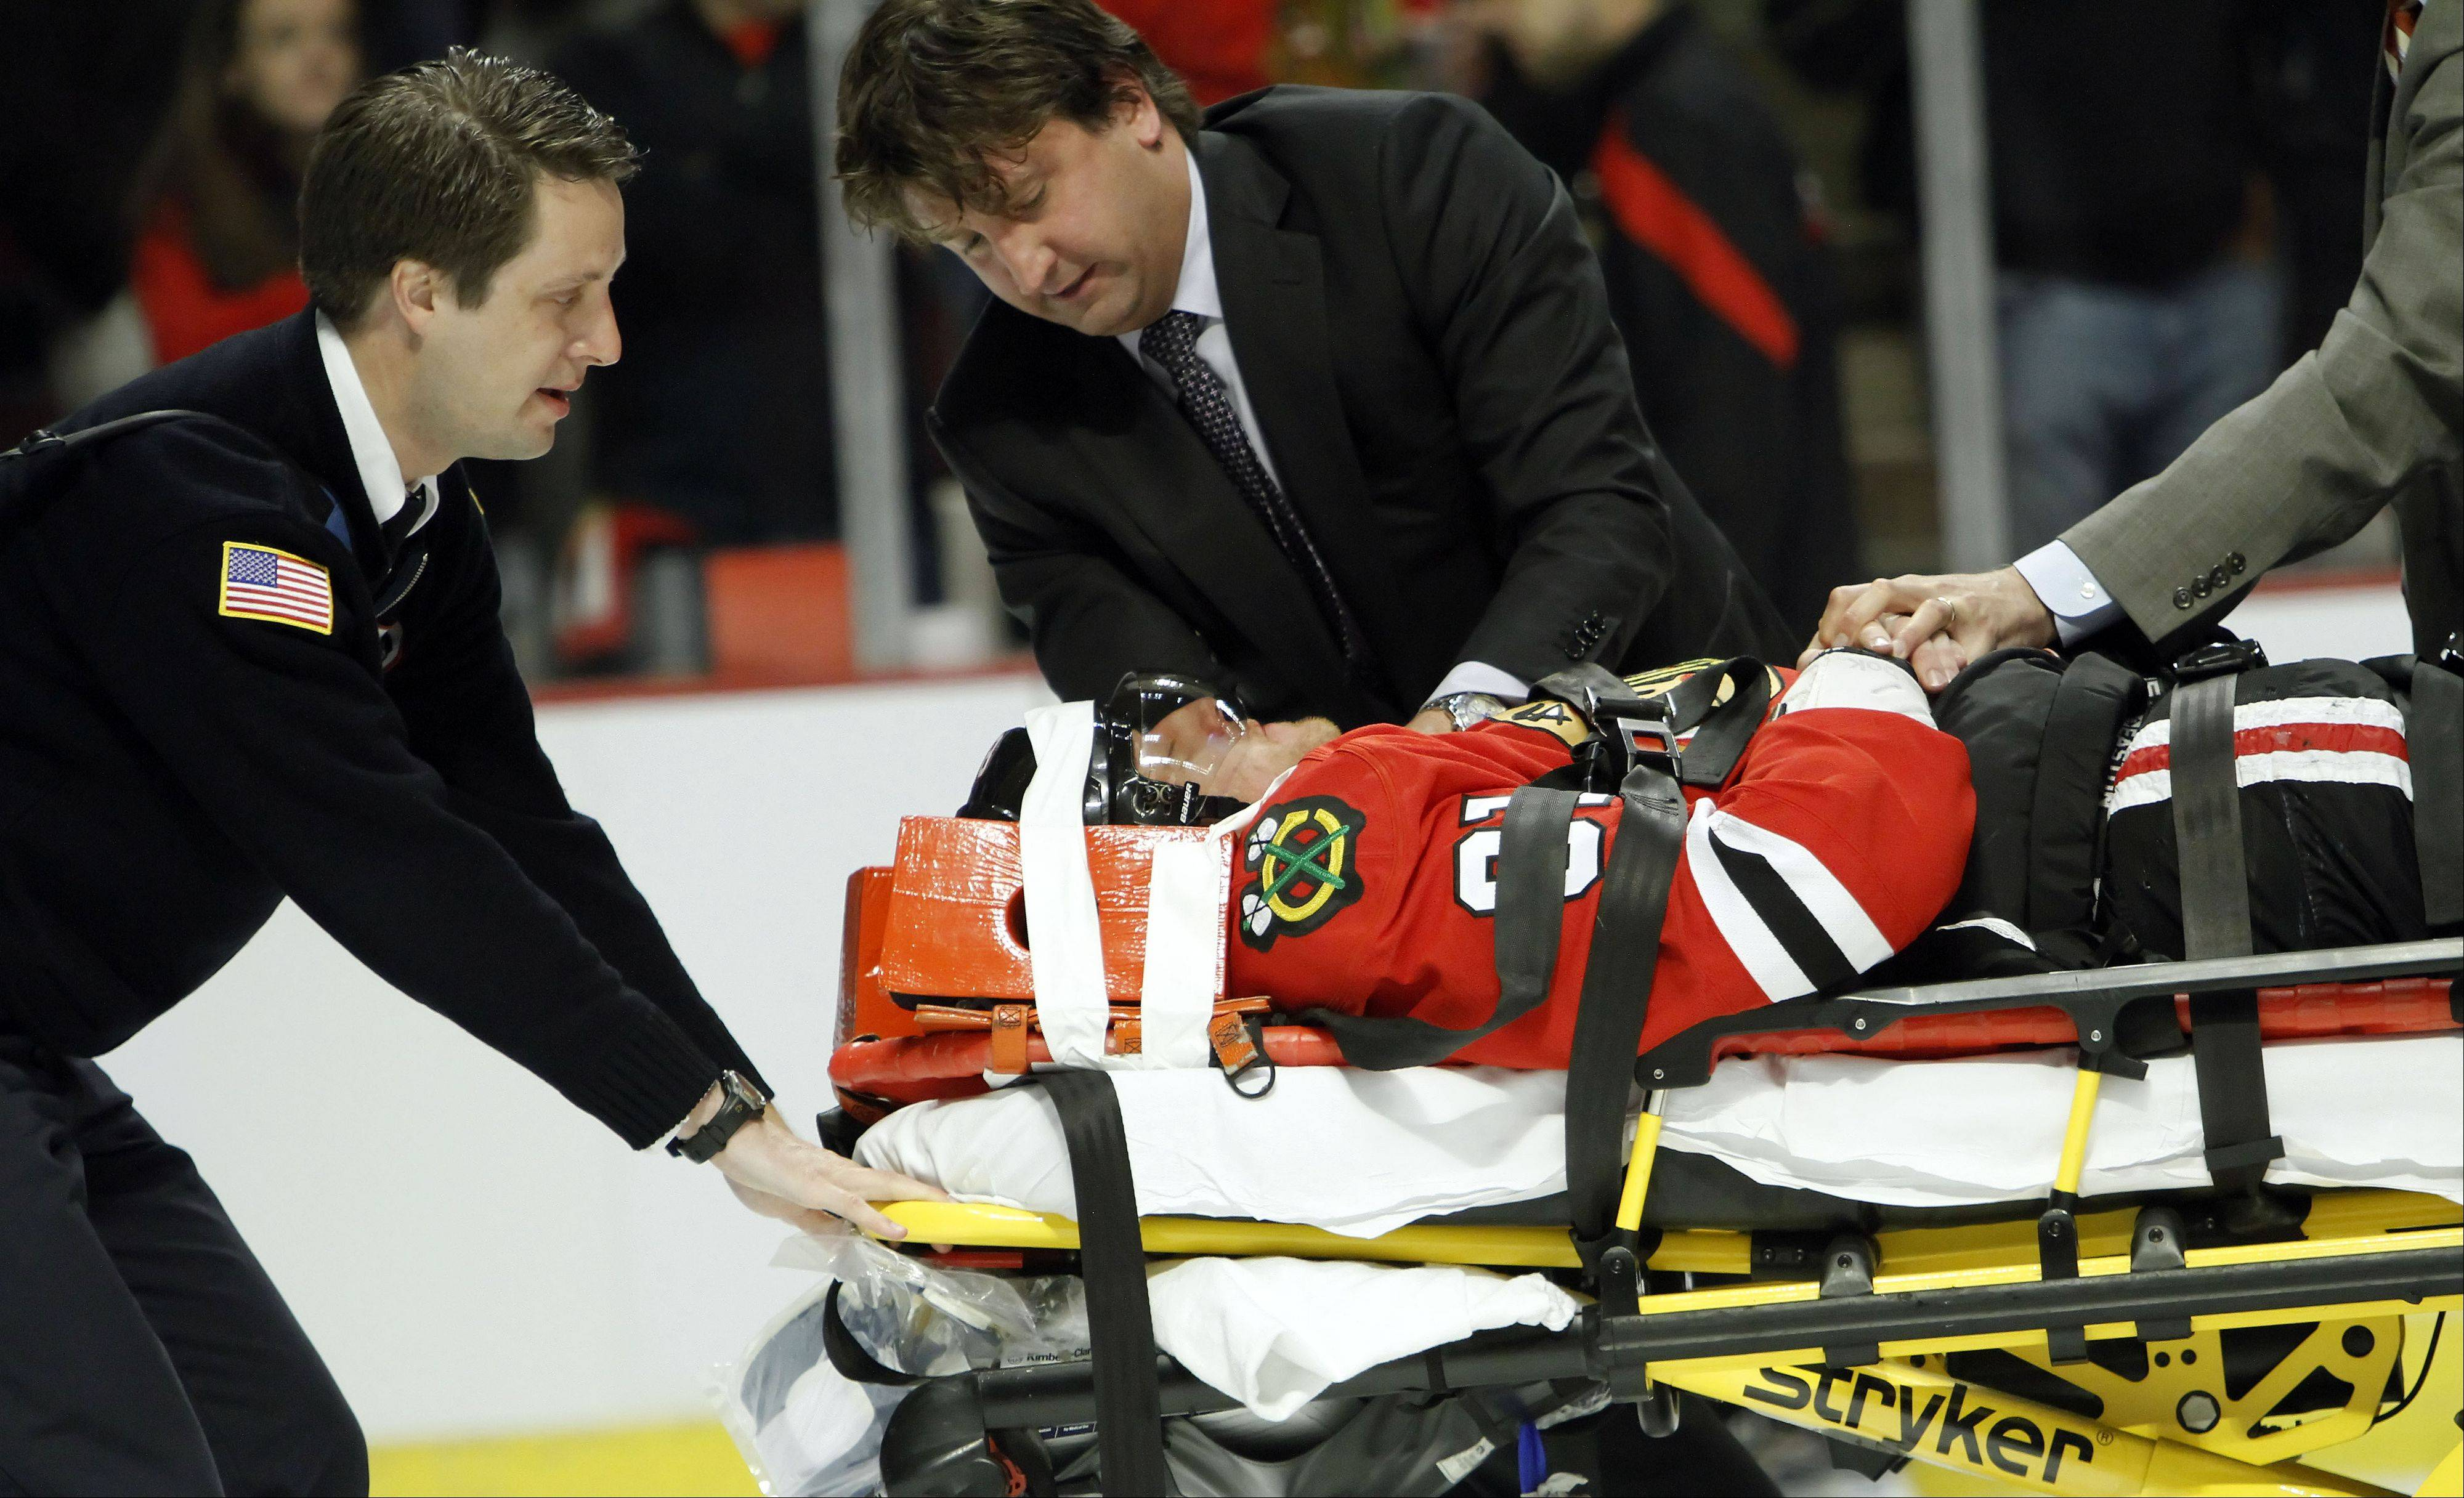 Blackhawks right wing Marian Hossa is taken off the ice on a stretcher after getting an elbow from Phoenix Coyotes left wing Raffi Torres during Game 3 of the Western Conference quarterfinals at The United Center in Chicago Tuesday night.